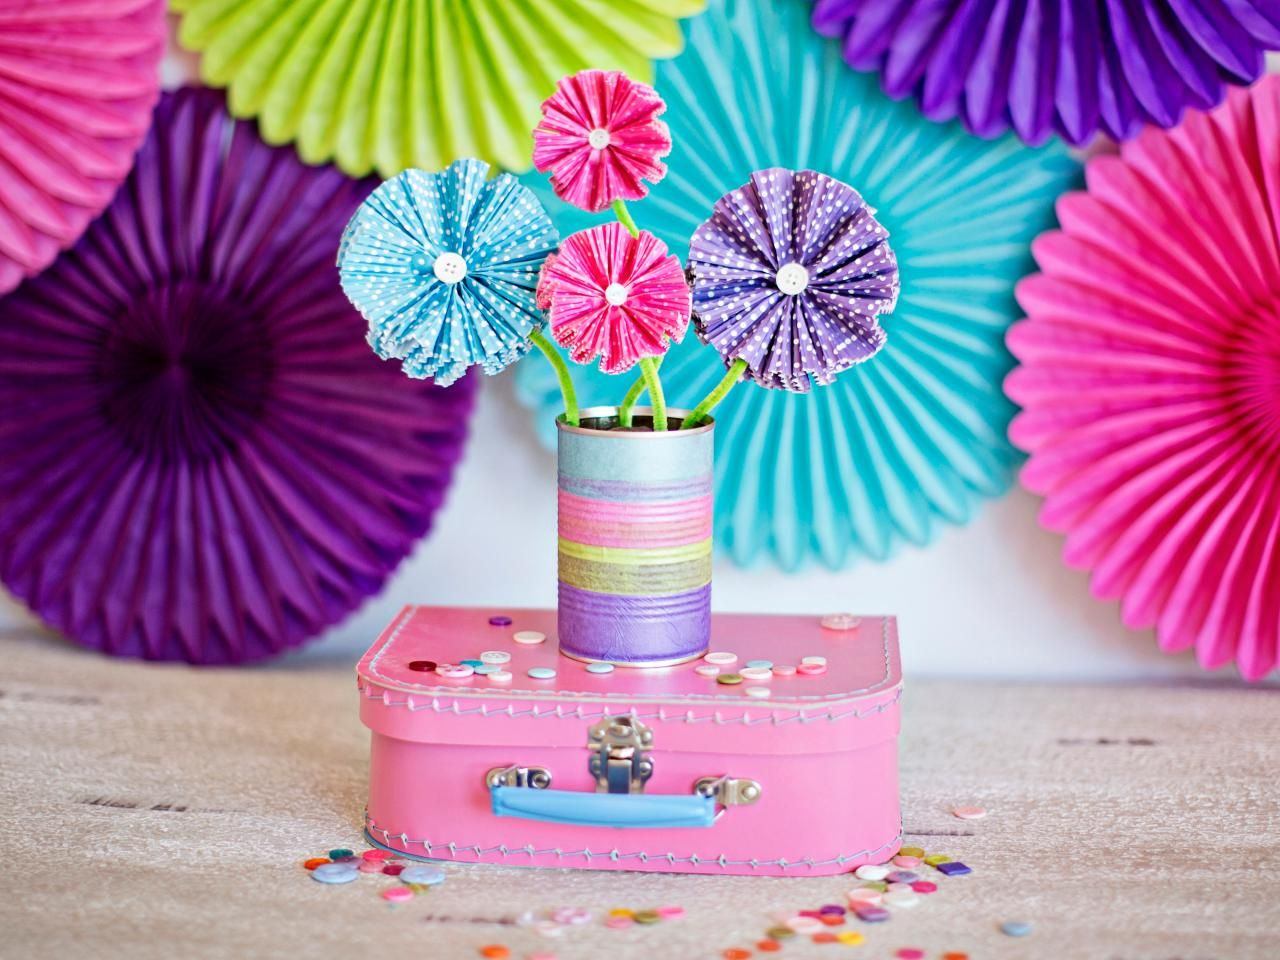 Uncategorized Craft Ideas Step By Step Instructions how to make paper flowers using cupcake liners diy network and craft has easy step by instructions for colorful fun